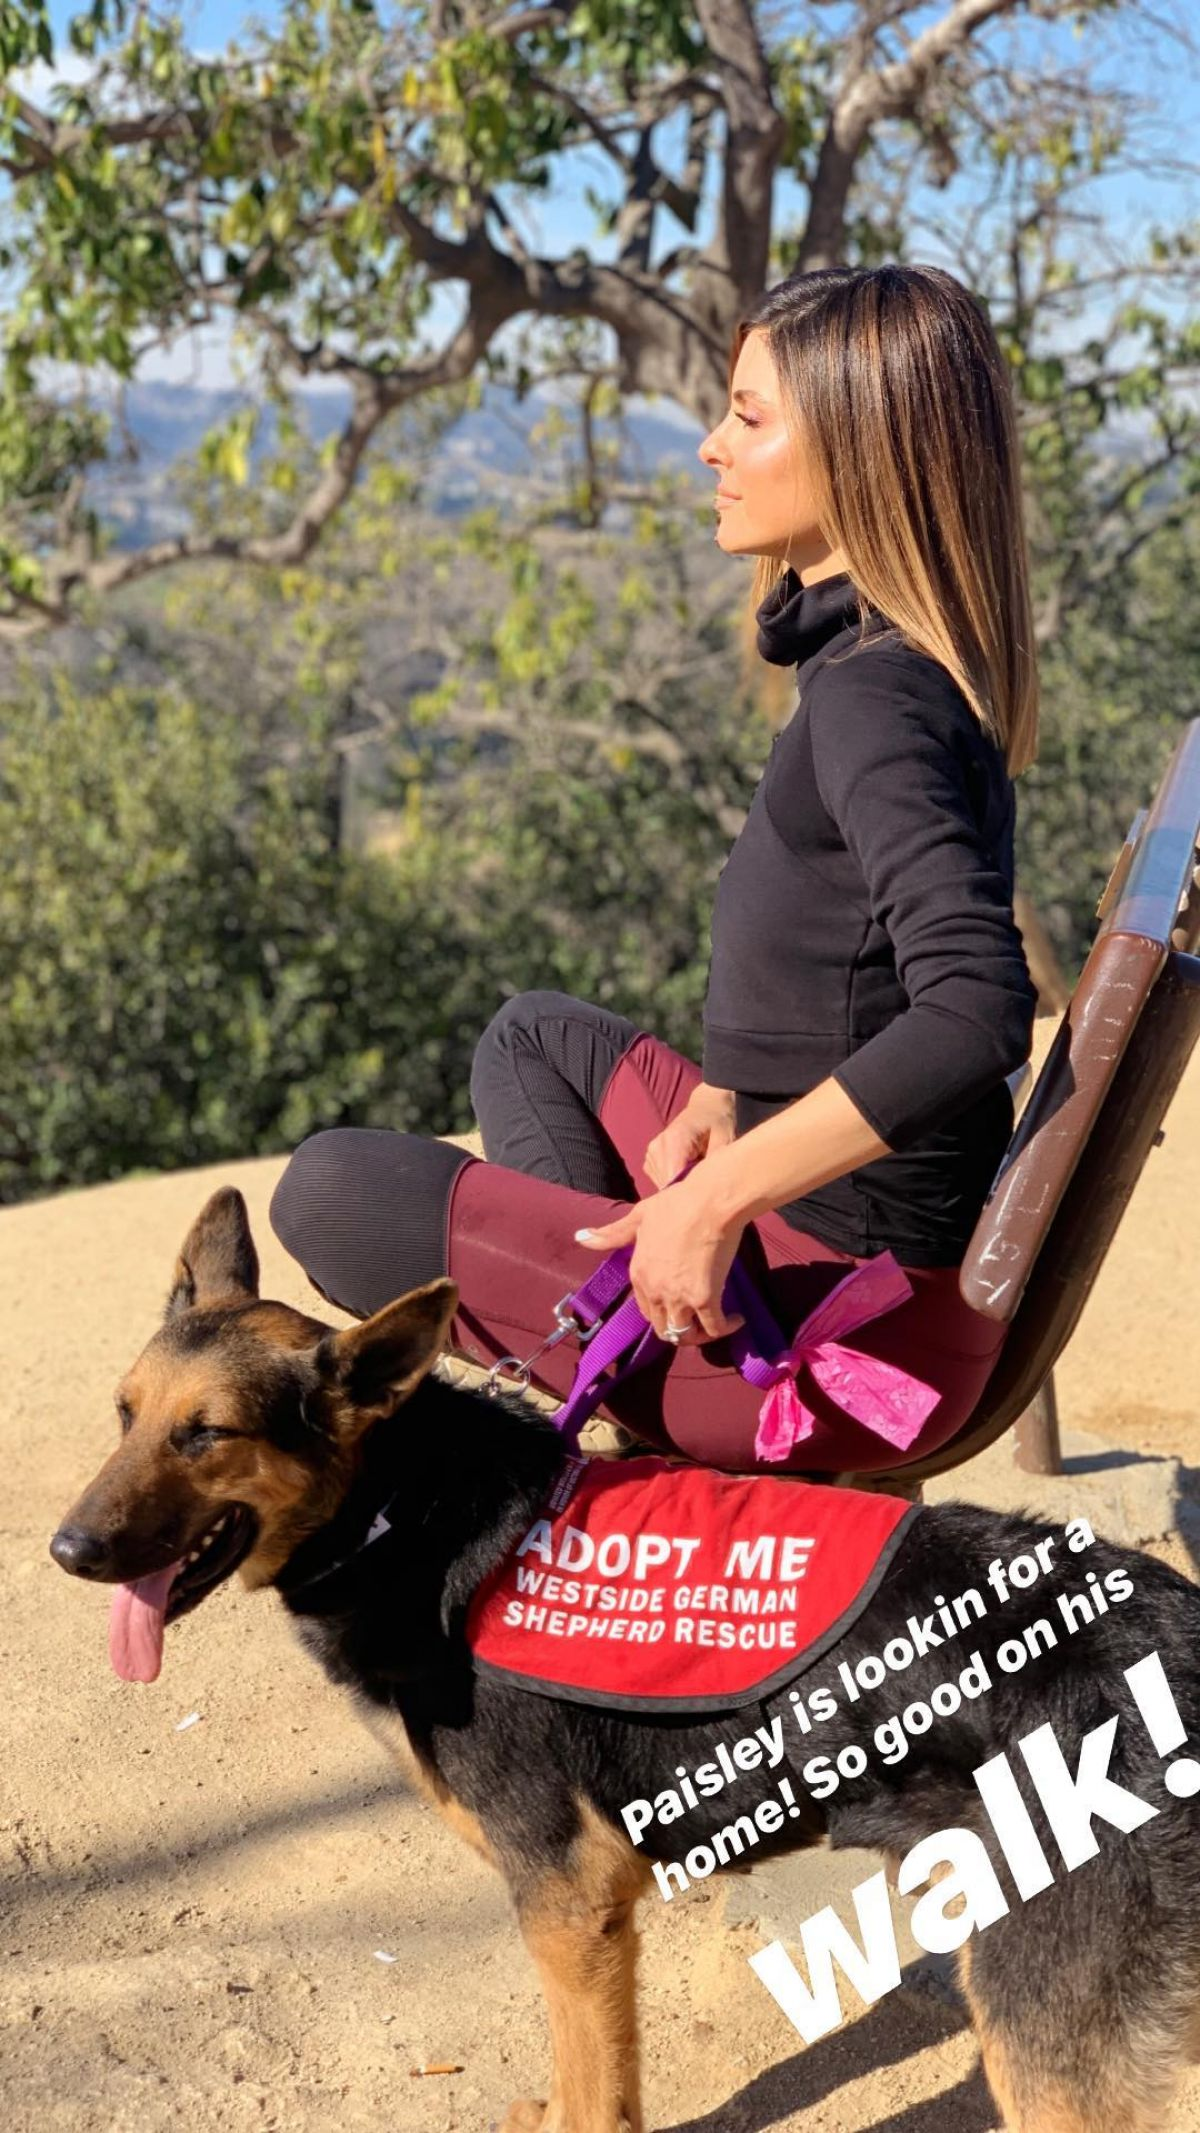 MARIA MENOUNOS Out Hiking In Hollywood 12/16/18 Instagram